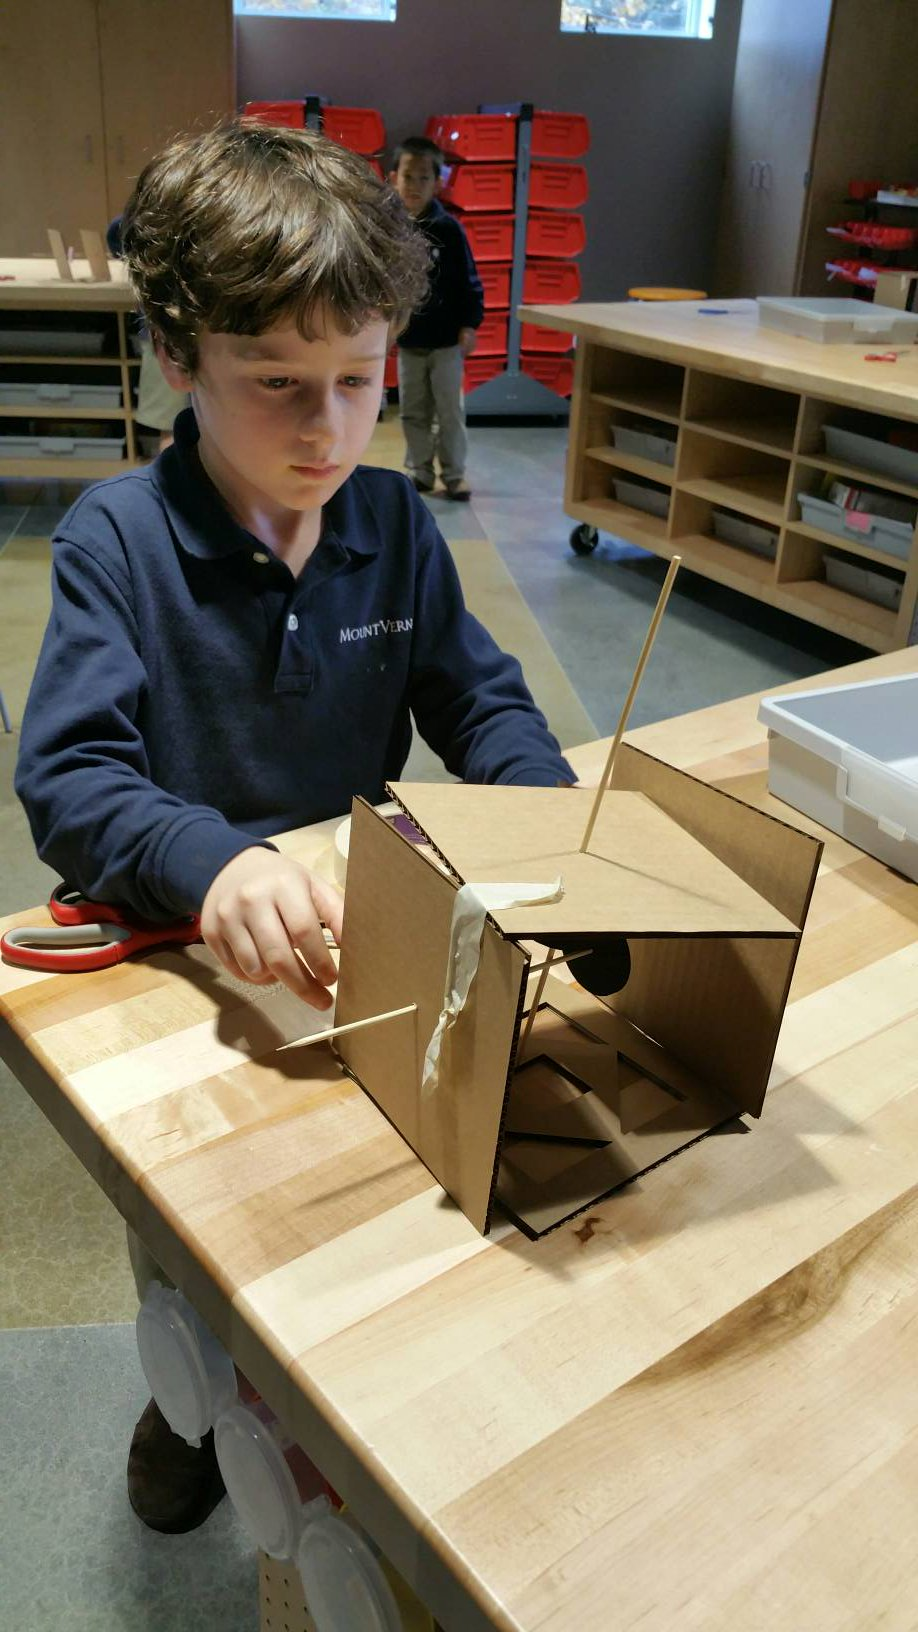 """""""I'm doing lots of testing, then I'll know if it works."""" #kidquote 1st grdr's tinkering stance for #CardboardAutomata!  #MakerEd #MVPSchool https://t.co/FsqxliUwrp"""